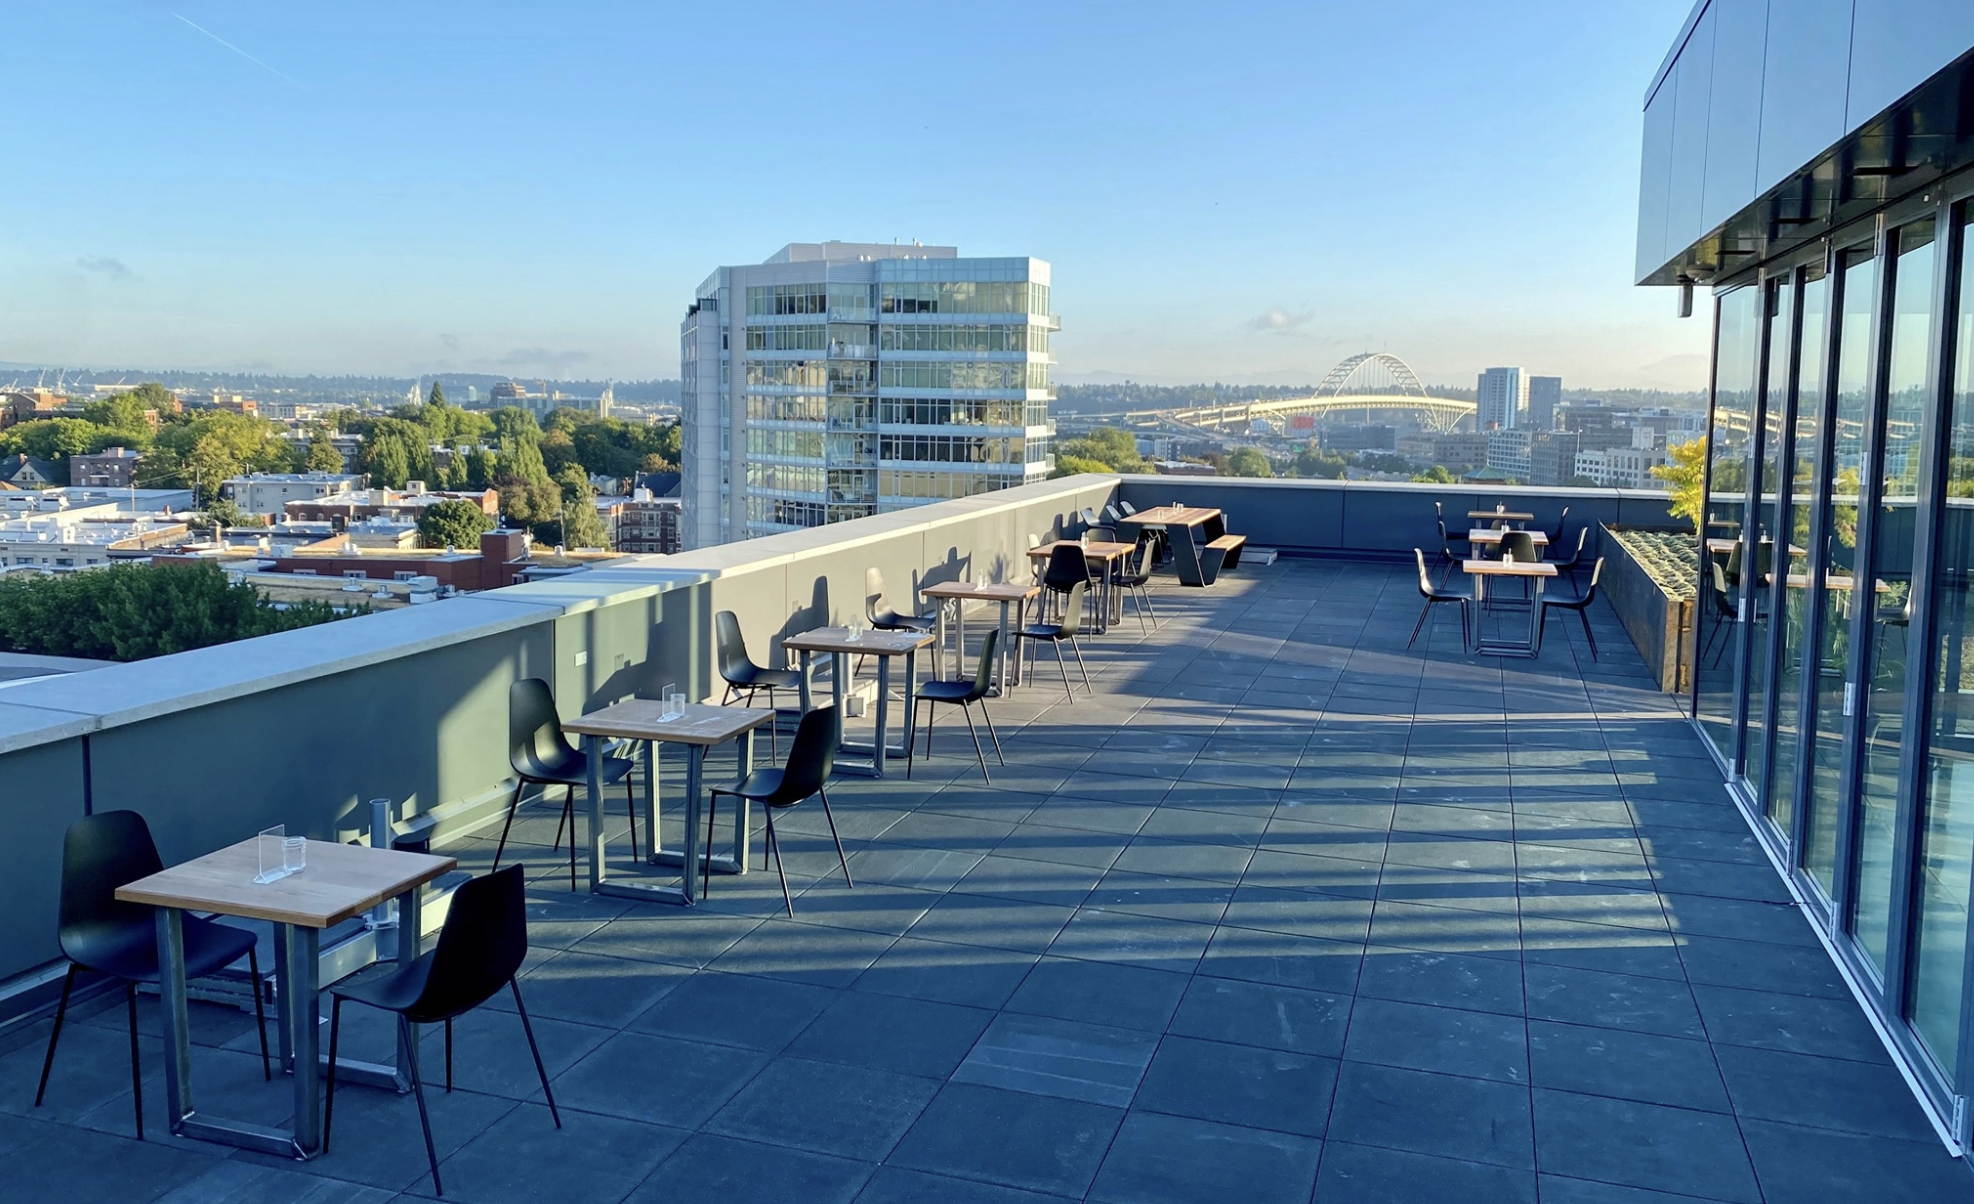 Tables and chairs sit out on a patio with a view of Portland